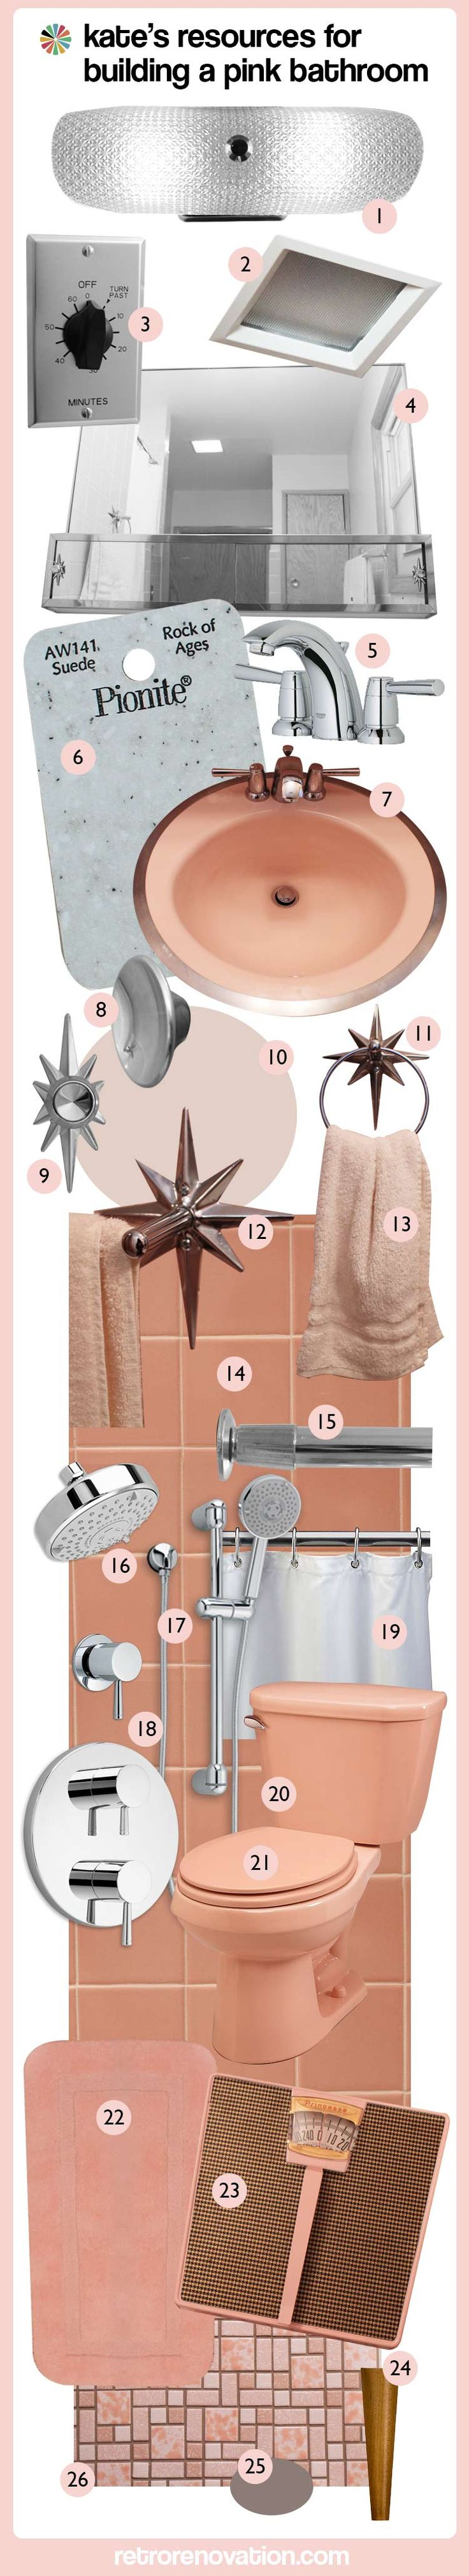 Home products company decorating ideas news amp media download contact - Kate S Resources For Building A Pink Bathroom 26 Key Items On Her Remodel List